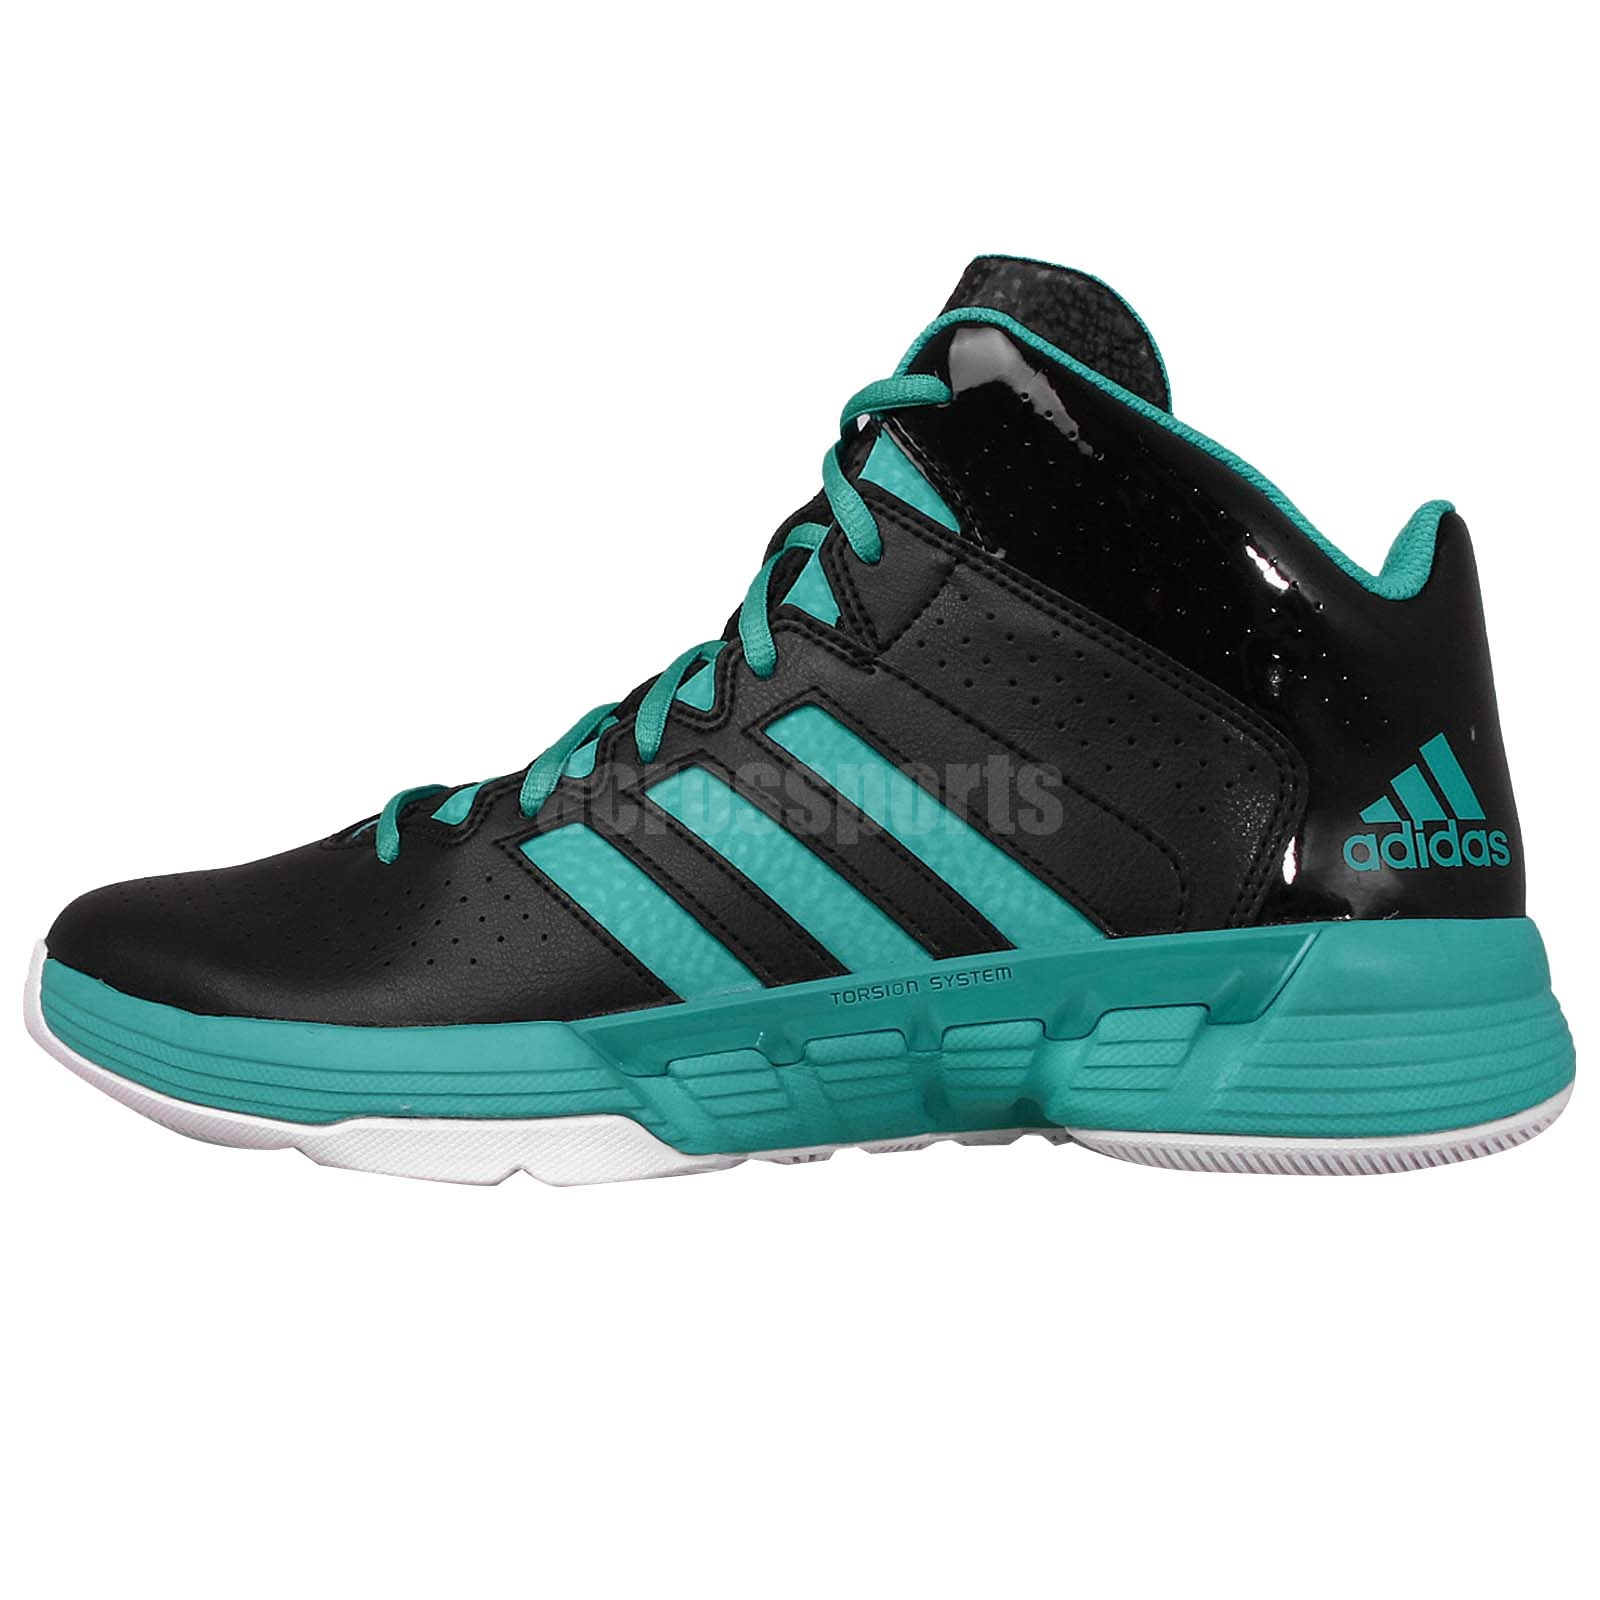 de5b901f332cda Adidas Shoes Torsion System softwaretutor.co.uk